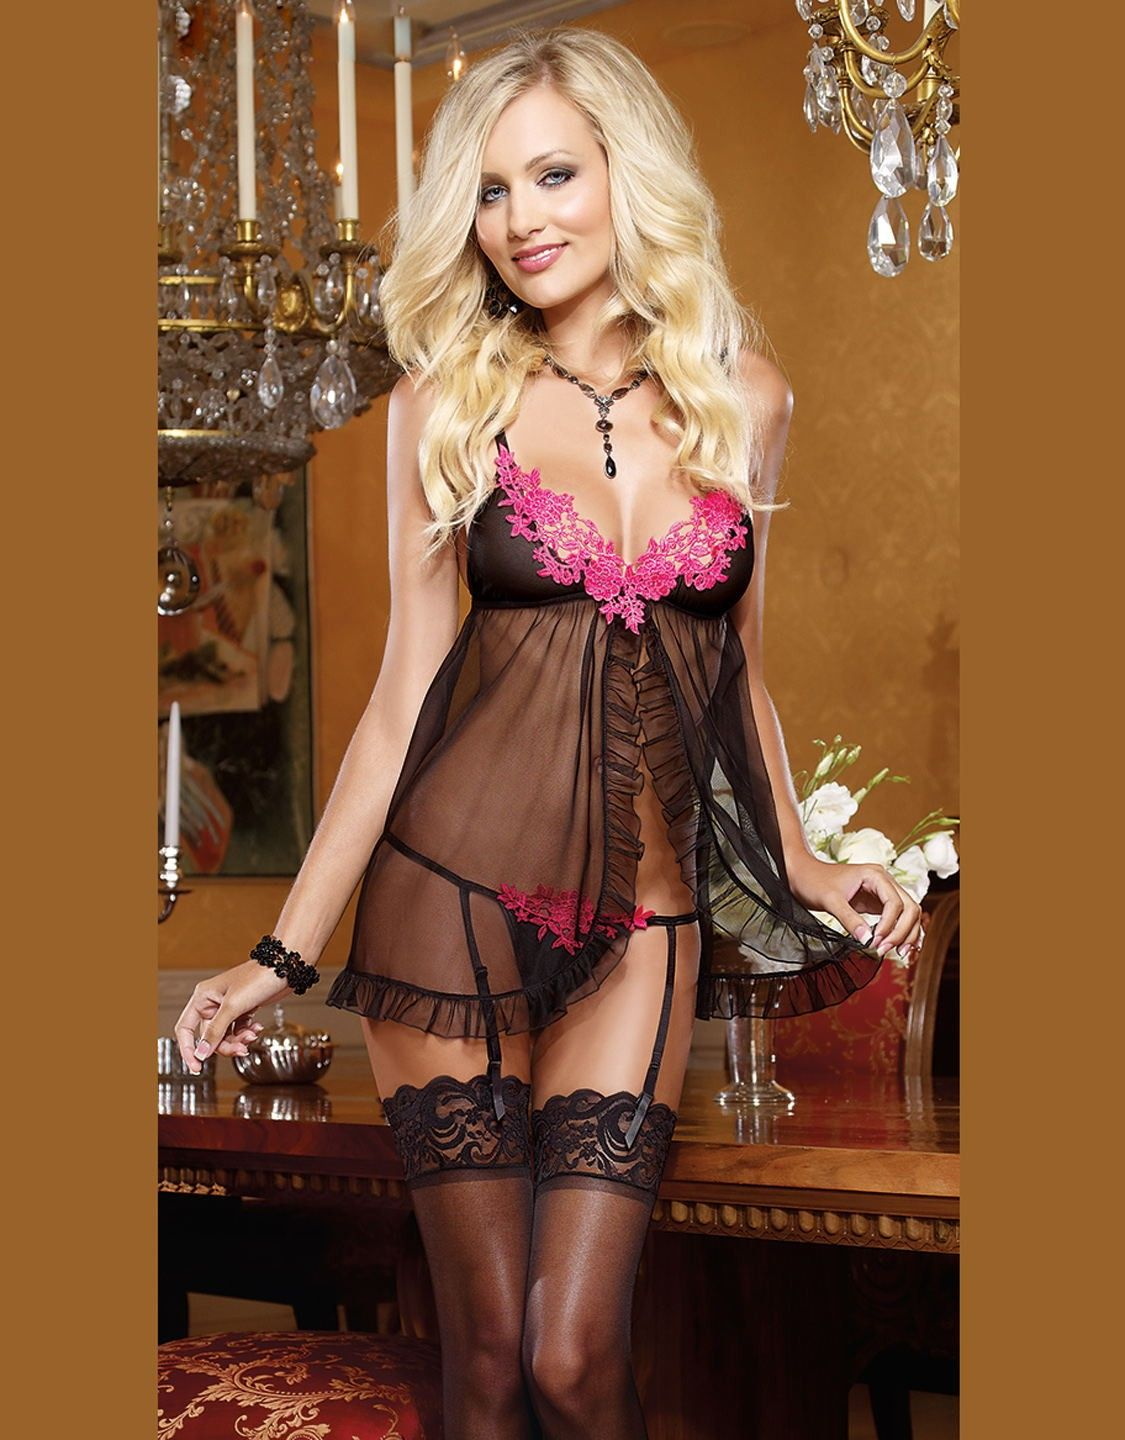 ccf88415d6 Seductive Black Sheer Mesh Open Front Babydoll Lingerie With Pink floral  and Thong